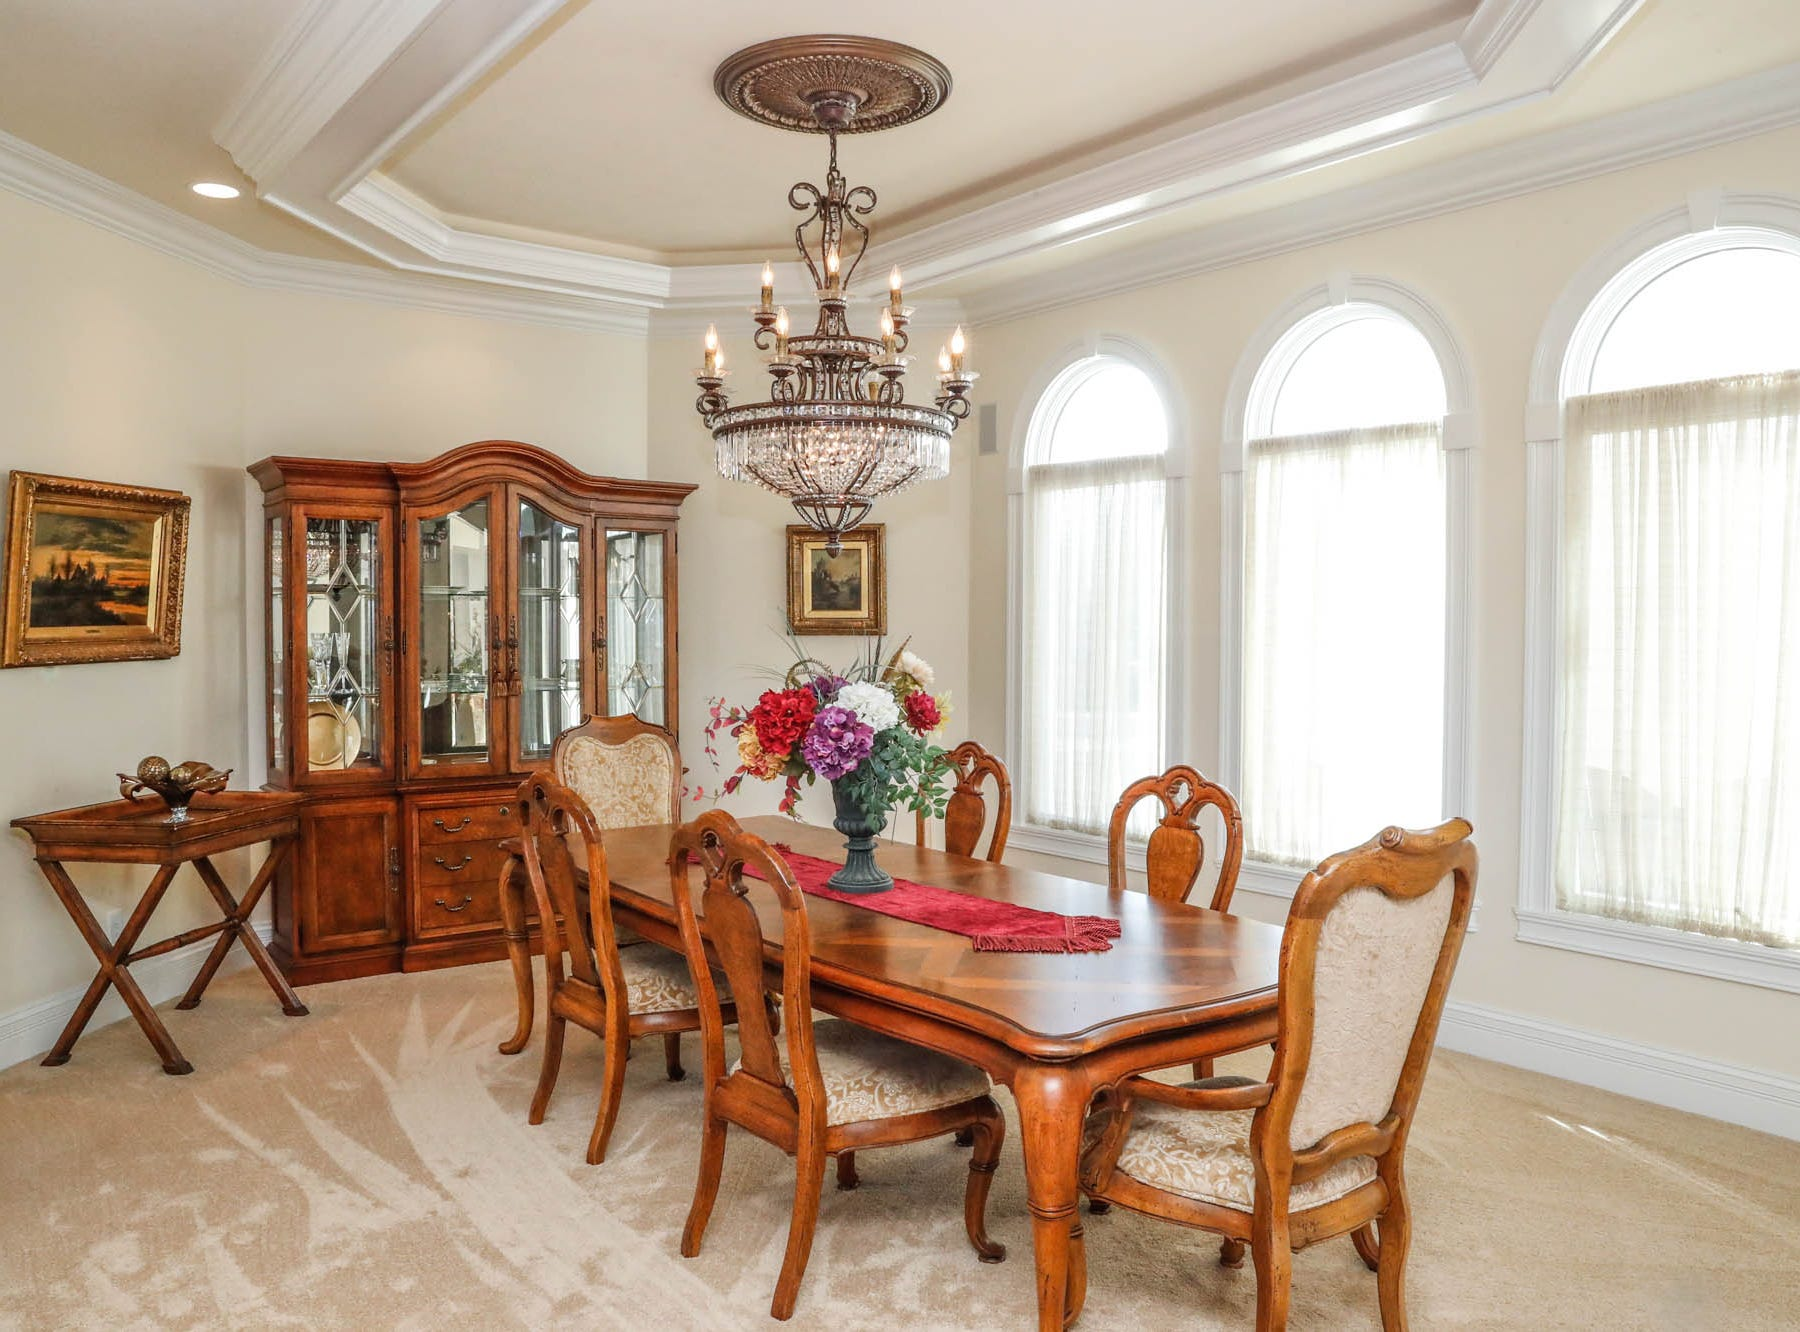 A dining room features large windows and crown molding, at a Greenwood home up for sale at 1216 Stone Ridge Court, Greenwood, Ind. on Wednesday, Jan. 30, 2019. The home features 8,234 square feet, four bedrooms, two master suits, a 10 car garage, and exercise room.